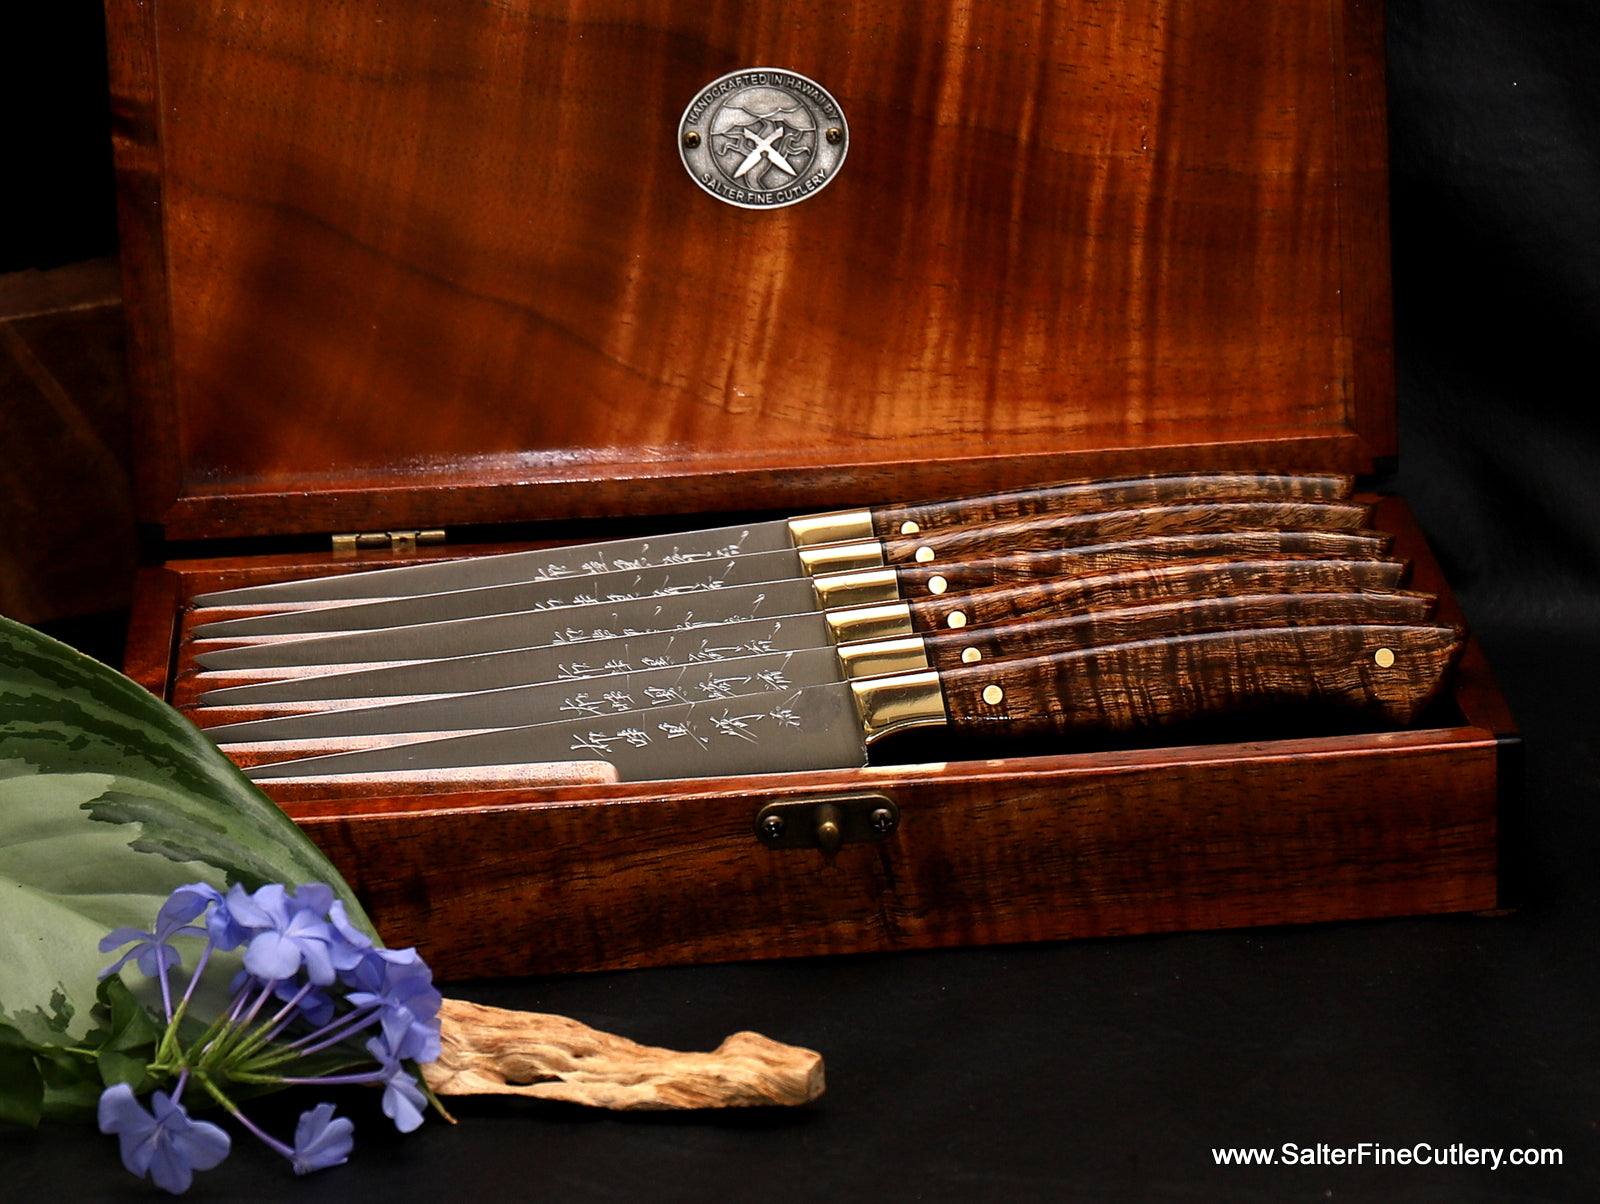 Custom handmade stainless steel steak knife set with satin clad finish R2 blades and beautiful handcrafted handles and keepsake box by Salter Fine Cutlery of Hawaii